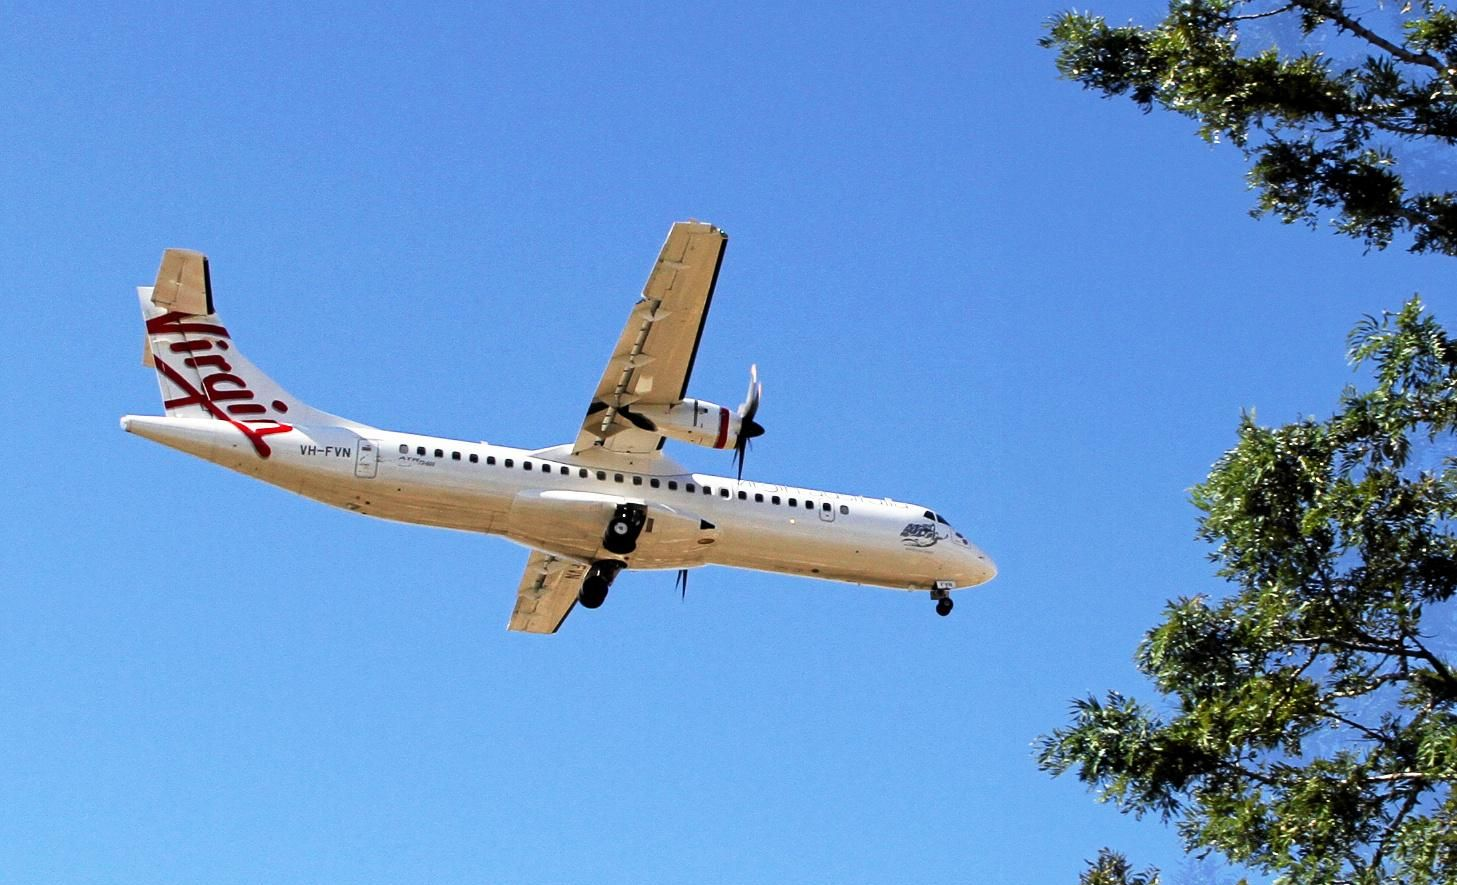 INCOMIN AIRLINE: Virgin Australia starts flying over the city of Bundaberg. Photo: Paul Donaldson / NewsMail